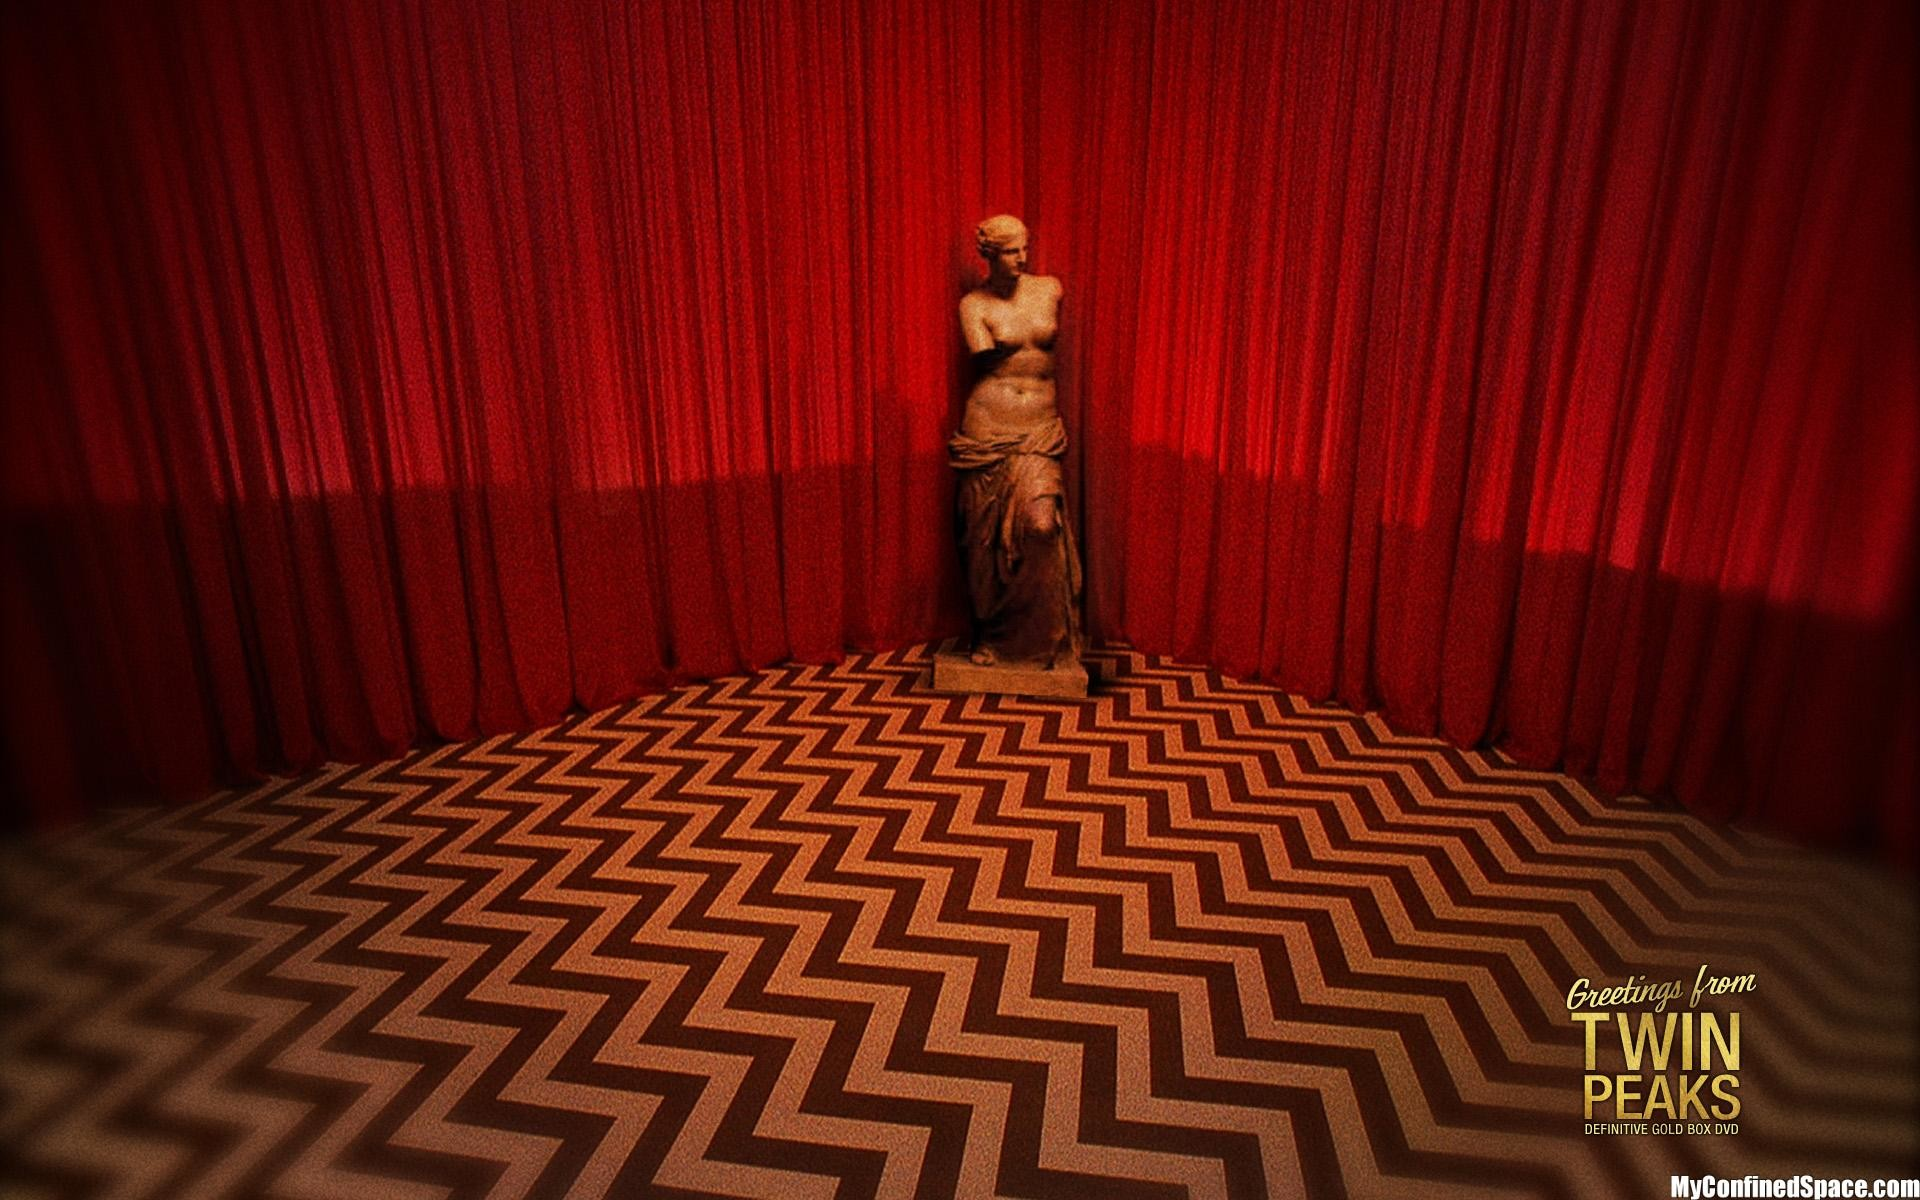 greetings from twin peaks – the red room